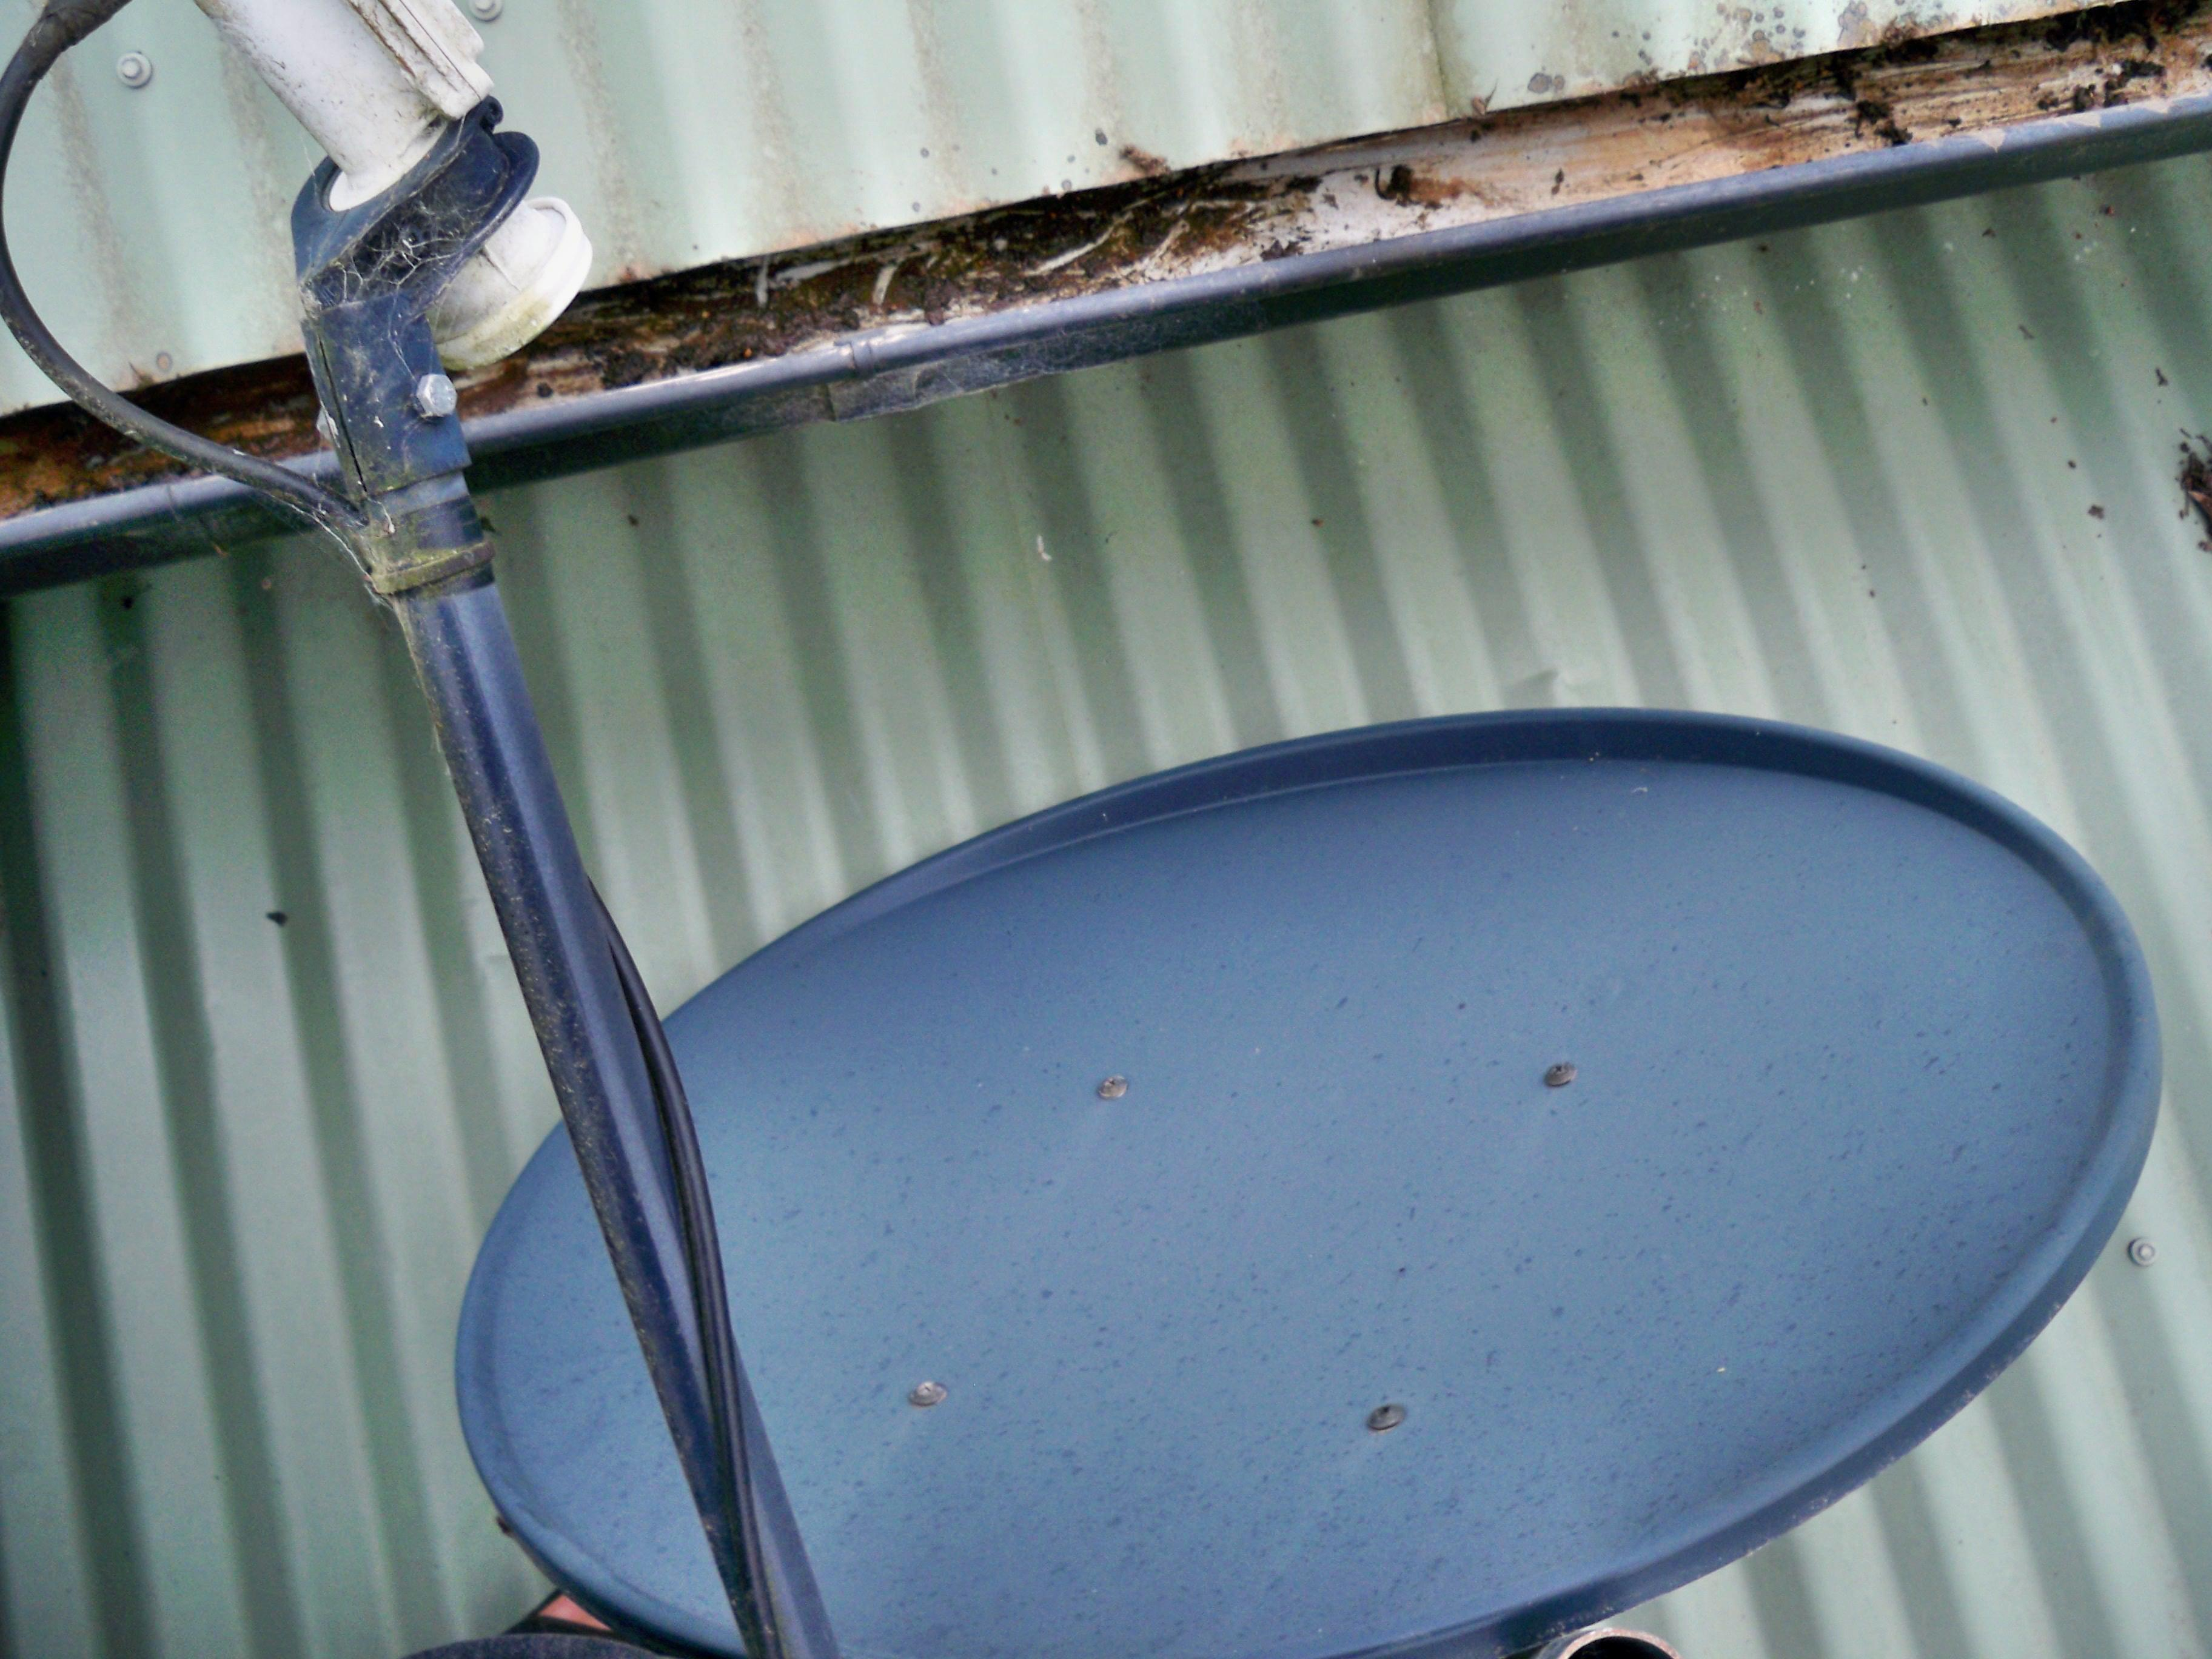 This should be Sat-dish.jpeg.  Is it missing?